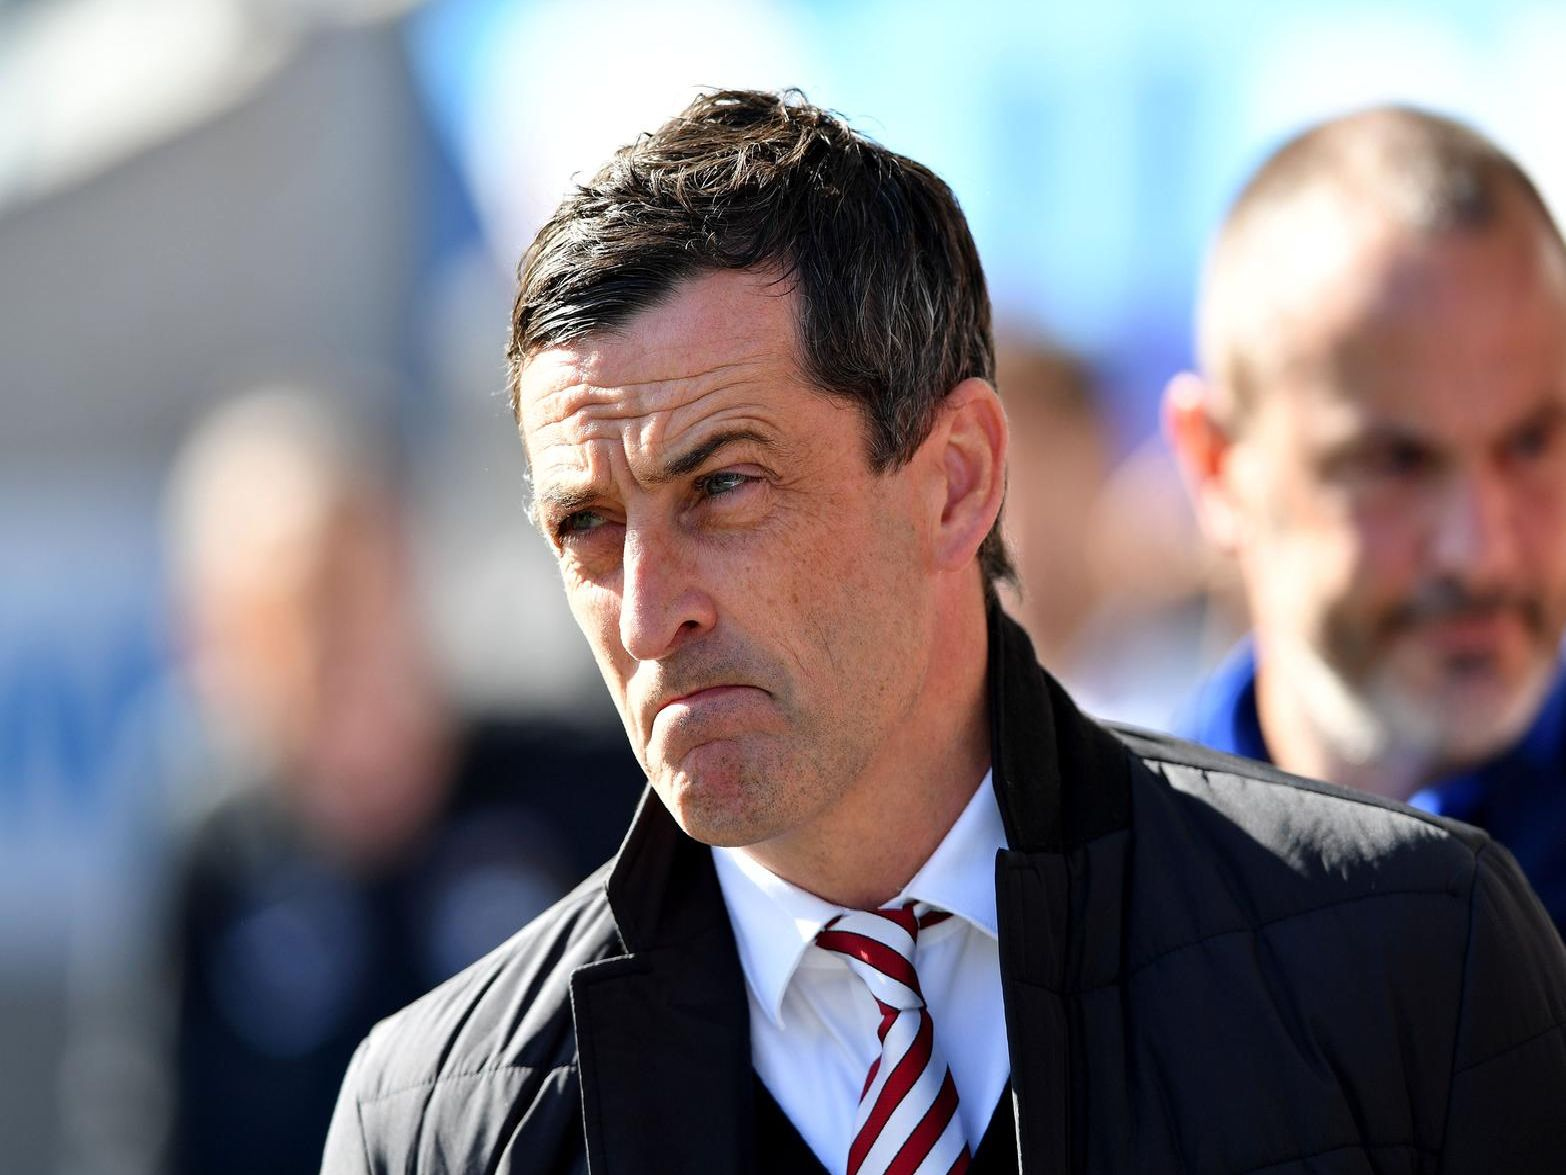 Jack Ross has provided several key updates ahead of Sunderland's game with Luton